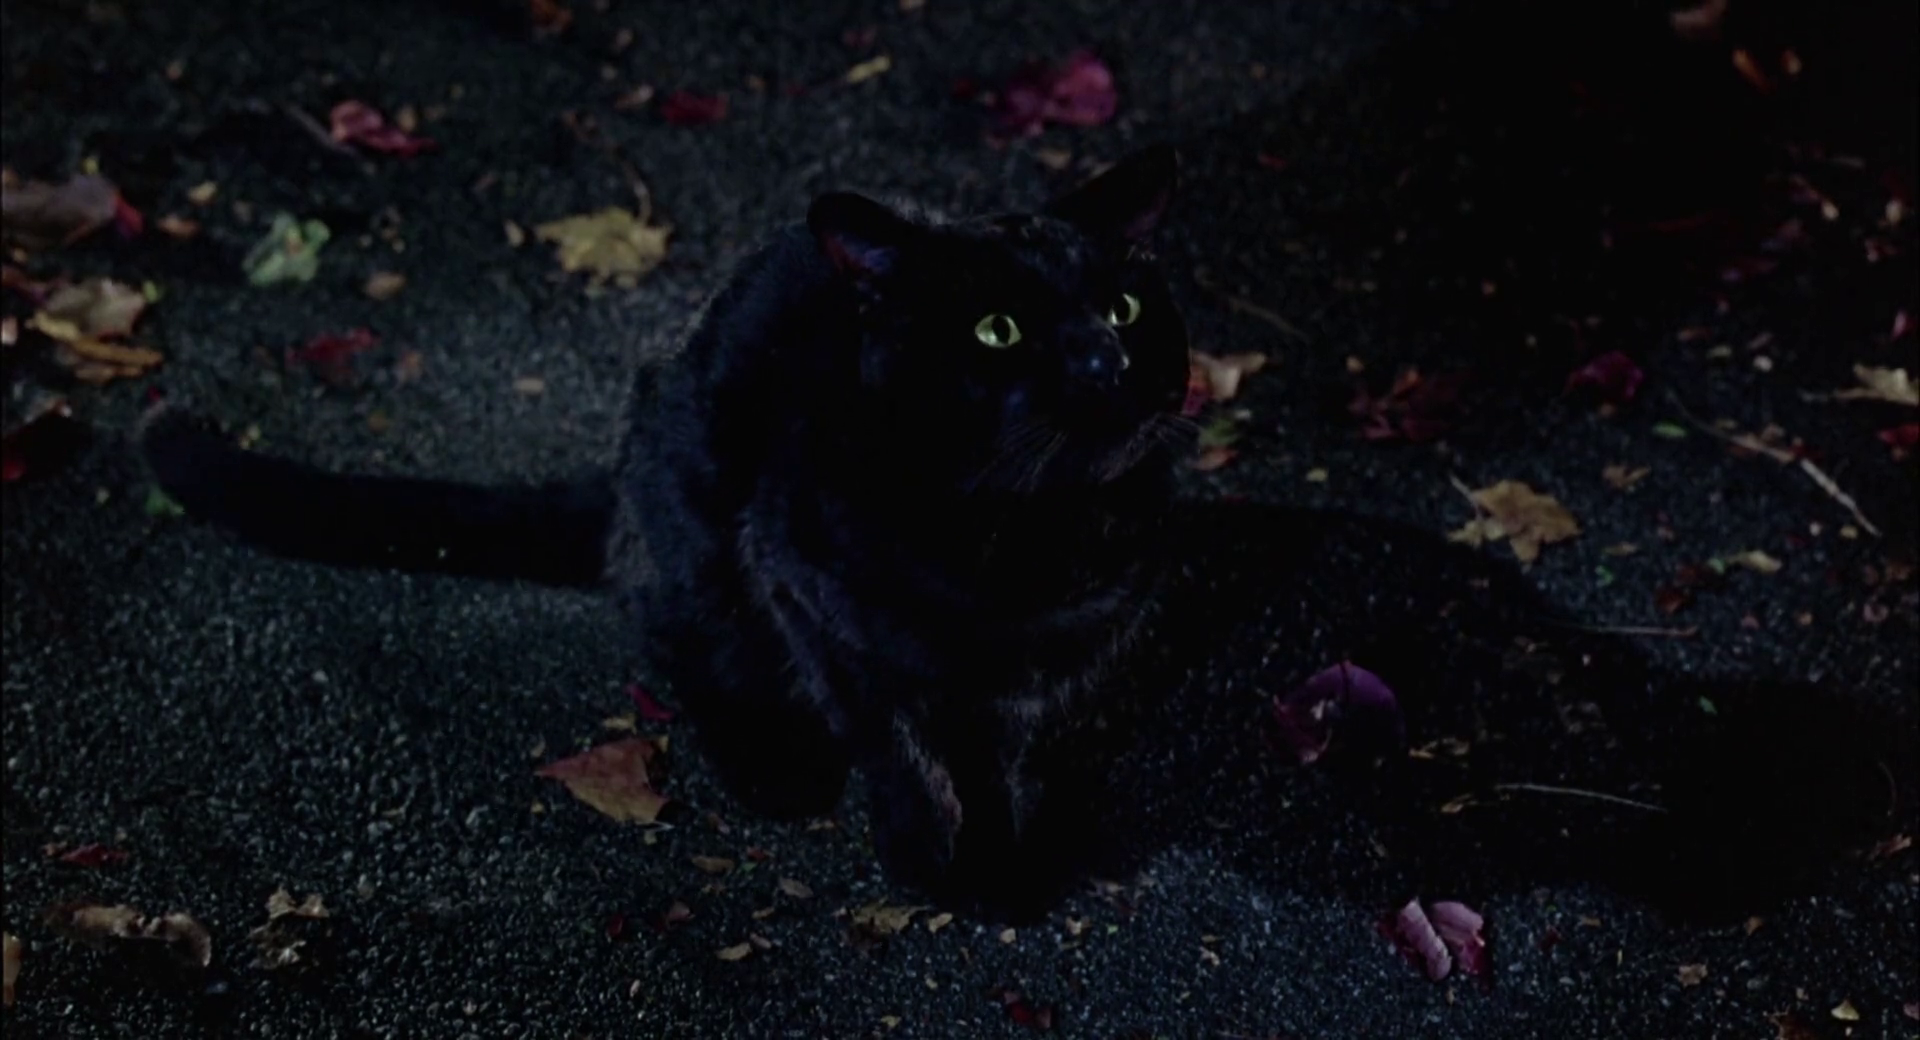 What Is The Name Of The Cat In Hocus Pocus